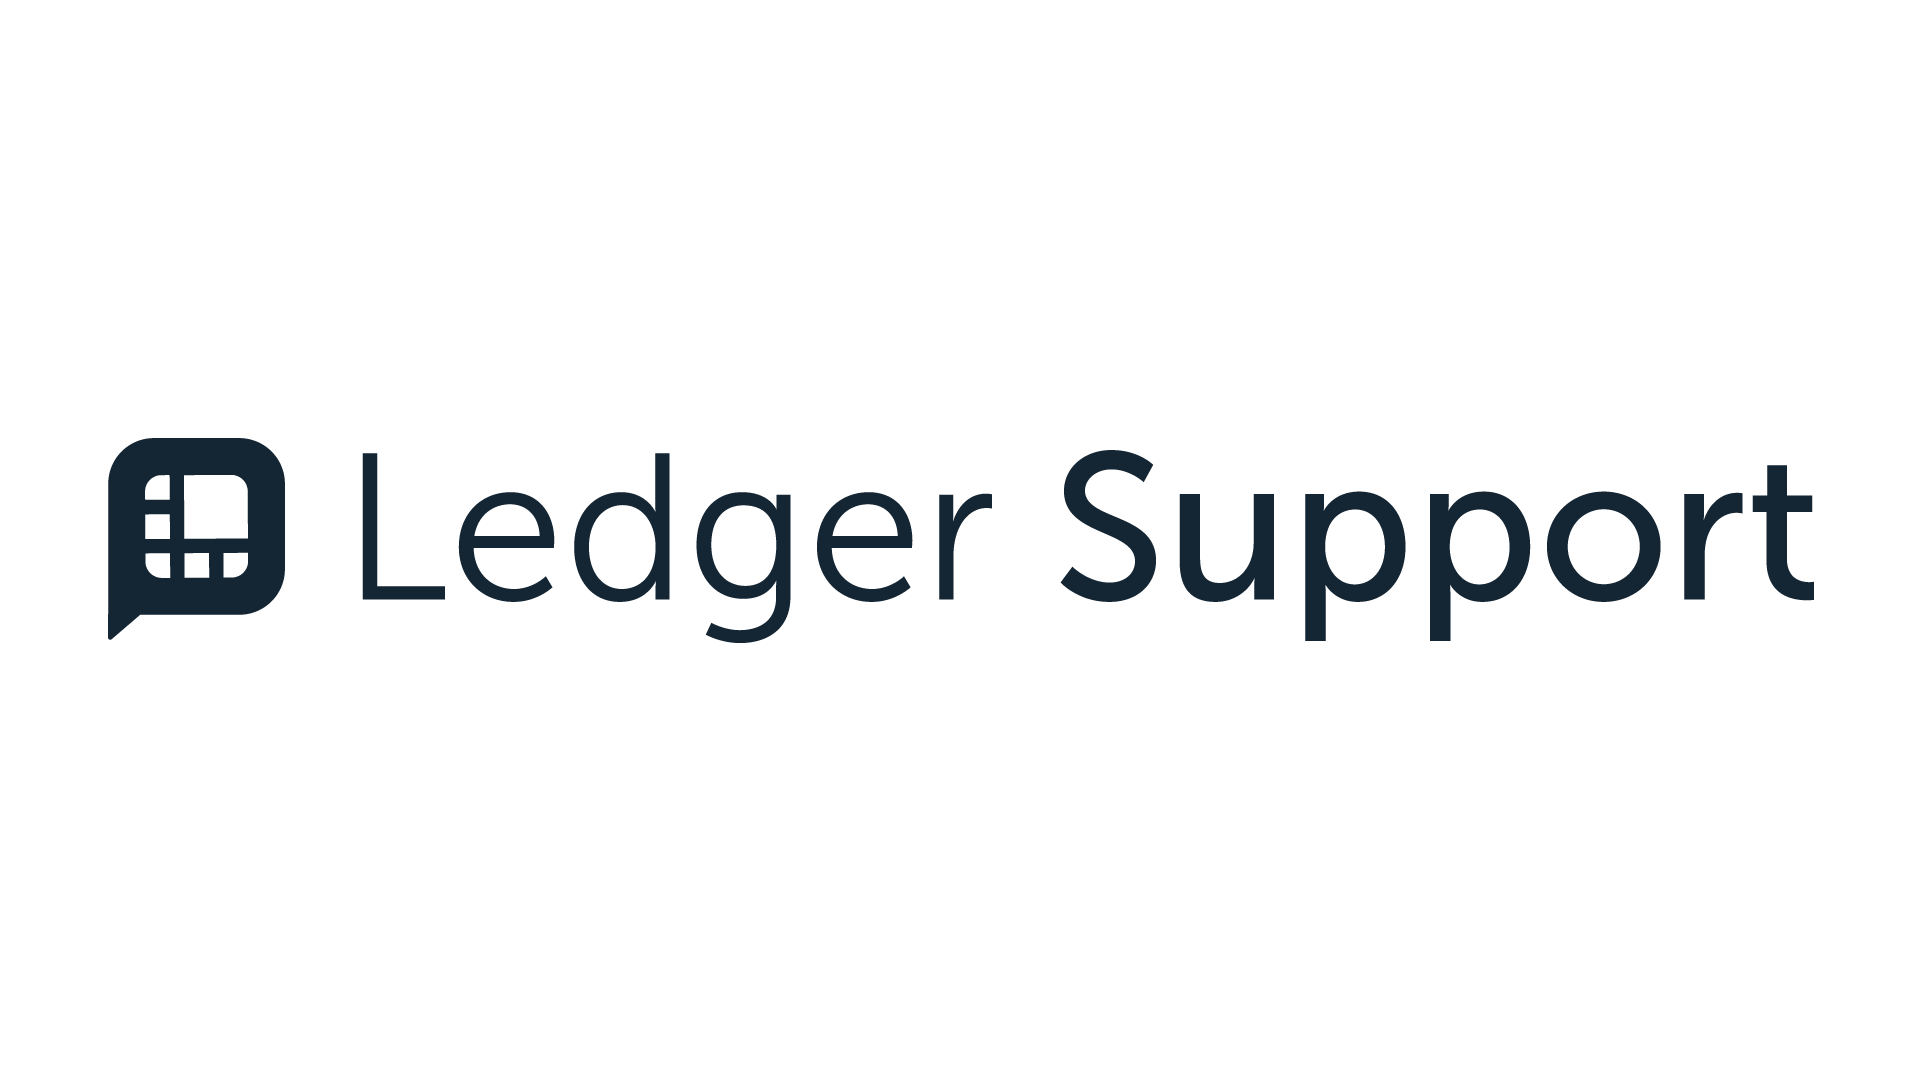 Introducing Ledger Support – Our New Twitter Account